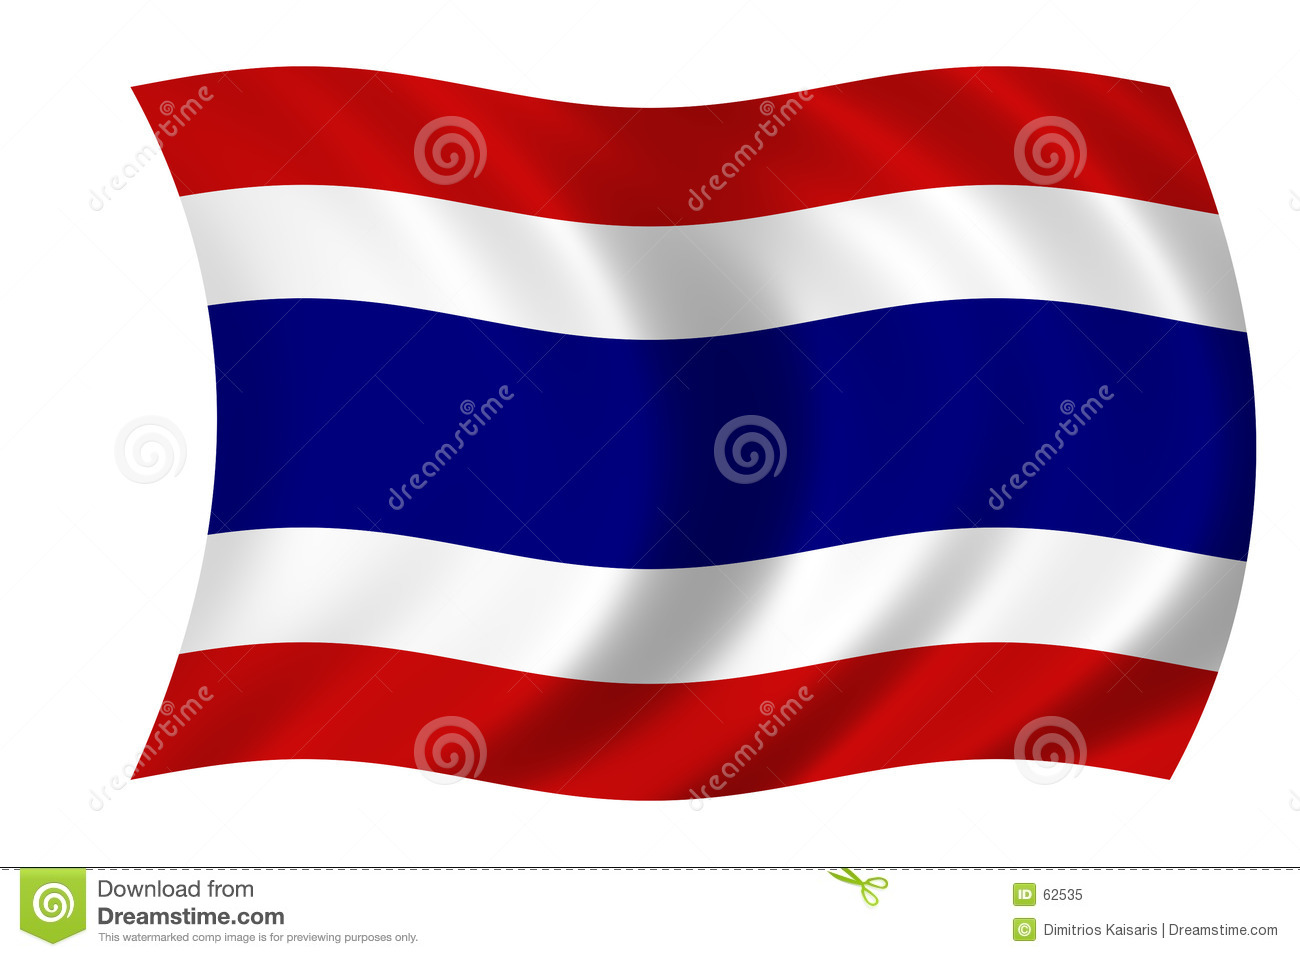 Waving flag of Thailand - thai flag.